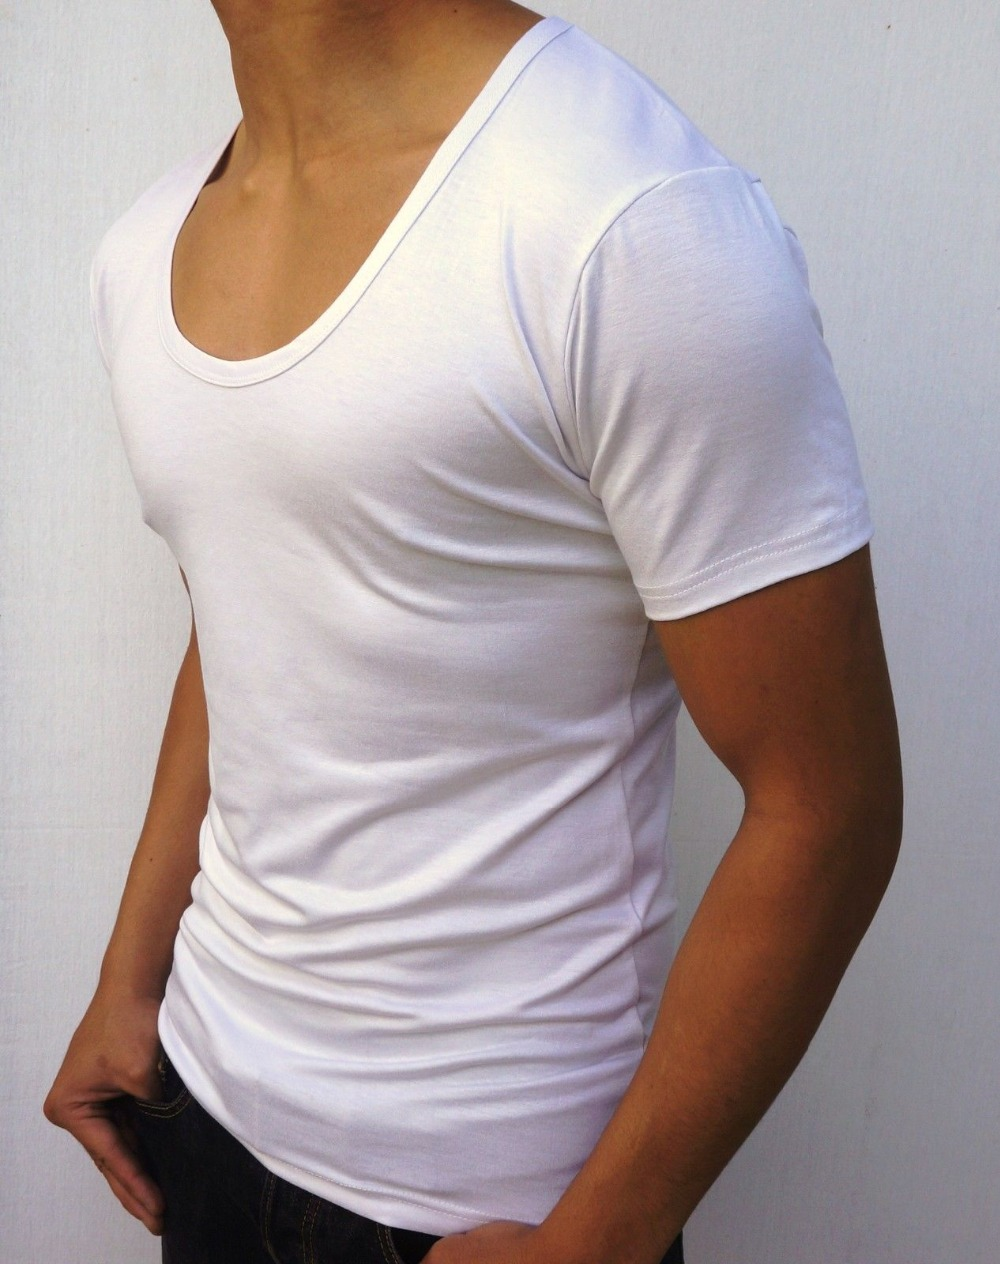 Plain black t shirt xxl - New Mens Plain White Black Deep Scoop Neck T Shirt S Xxl Slim Fit Fashion Men S Singlets Gym Tee Shirts Sports Clothes In T Shirts From Men S Clothing